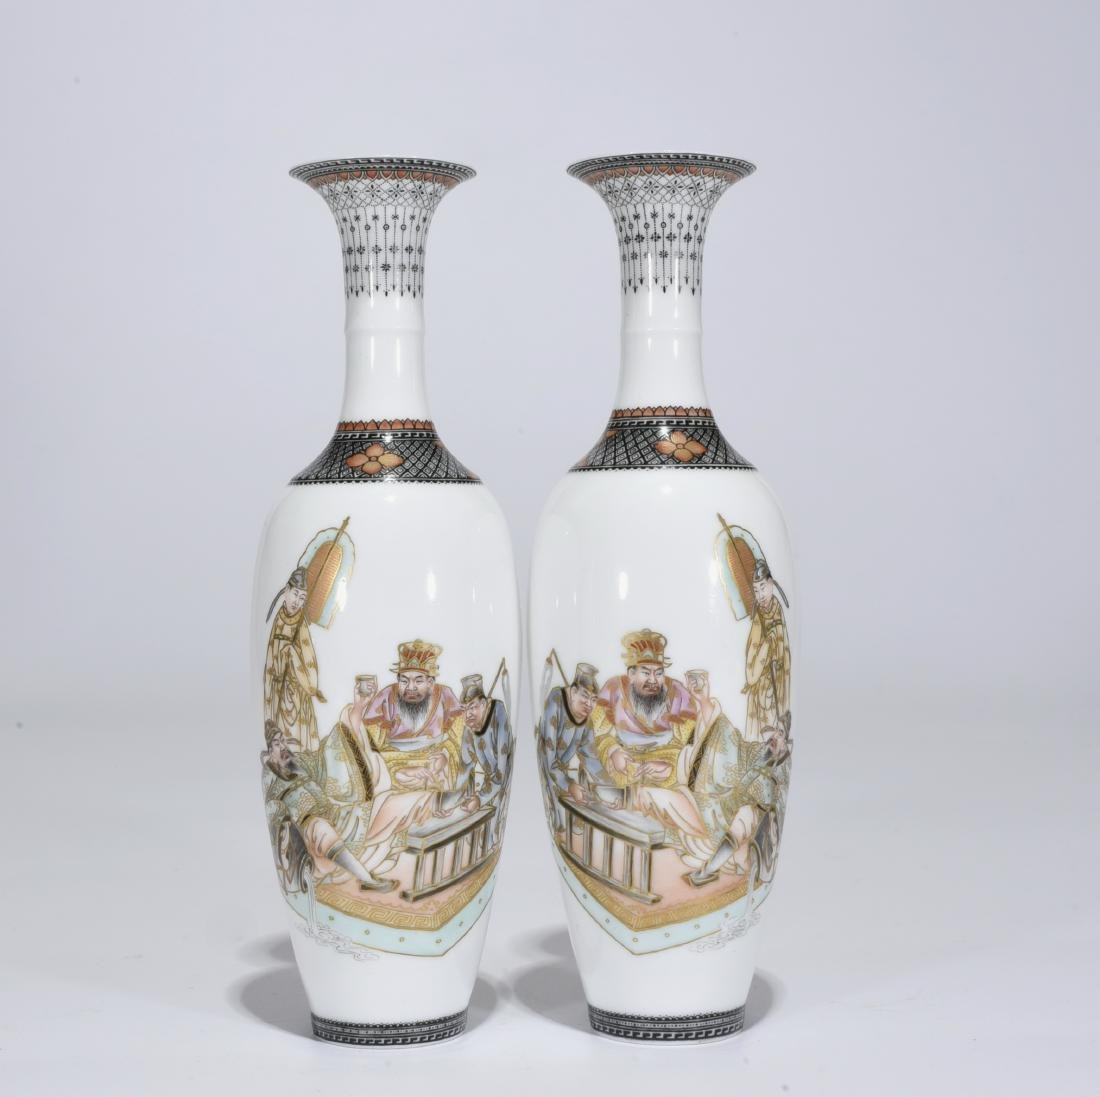 Yongzheng Mark, A Pair of Famille Rose Vases